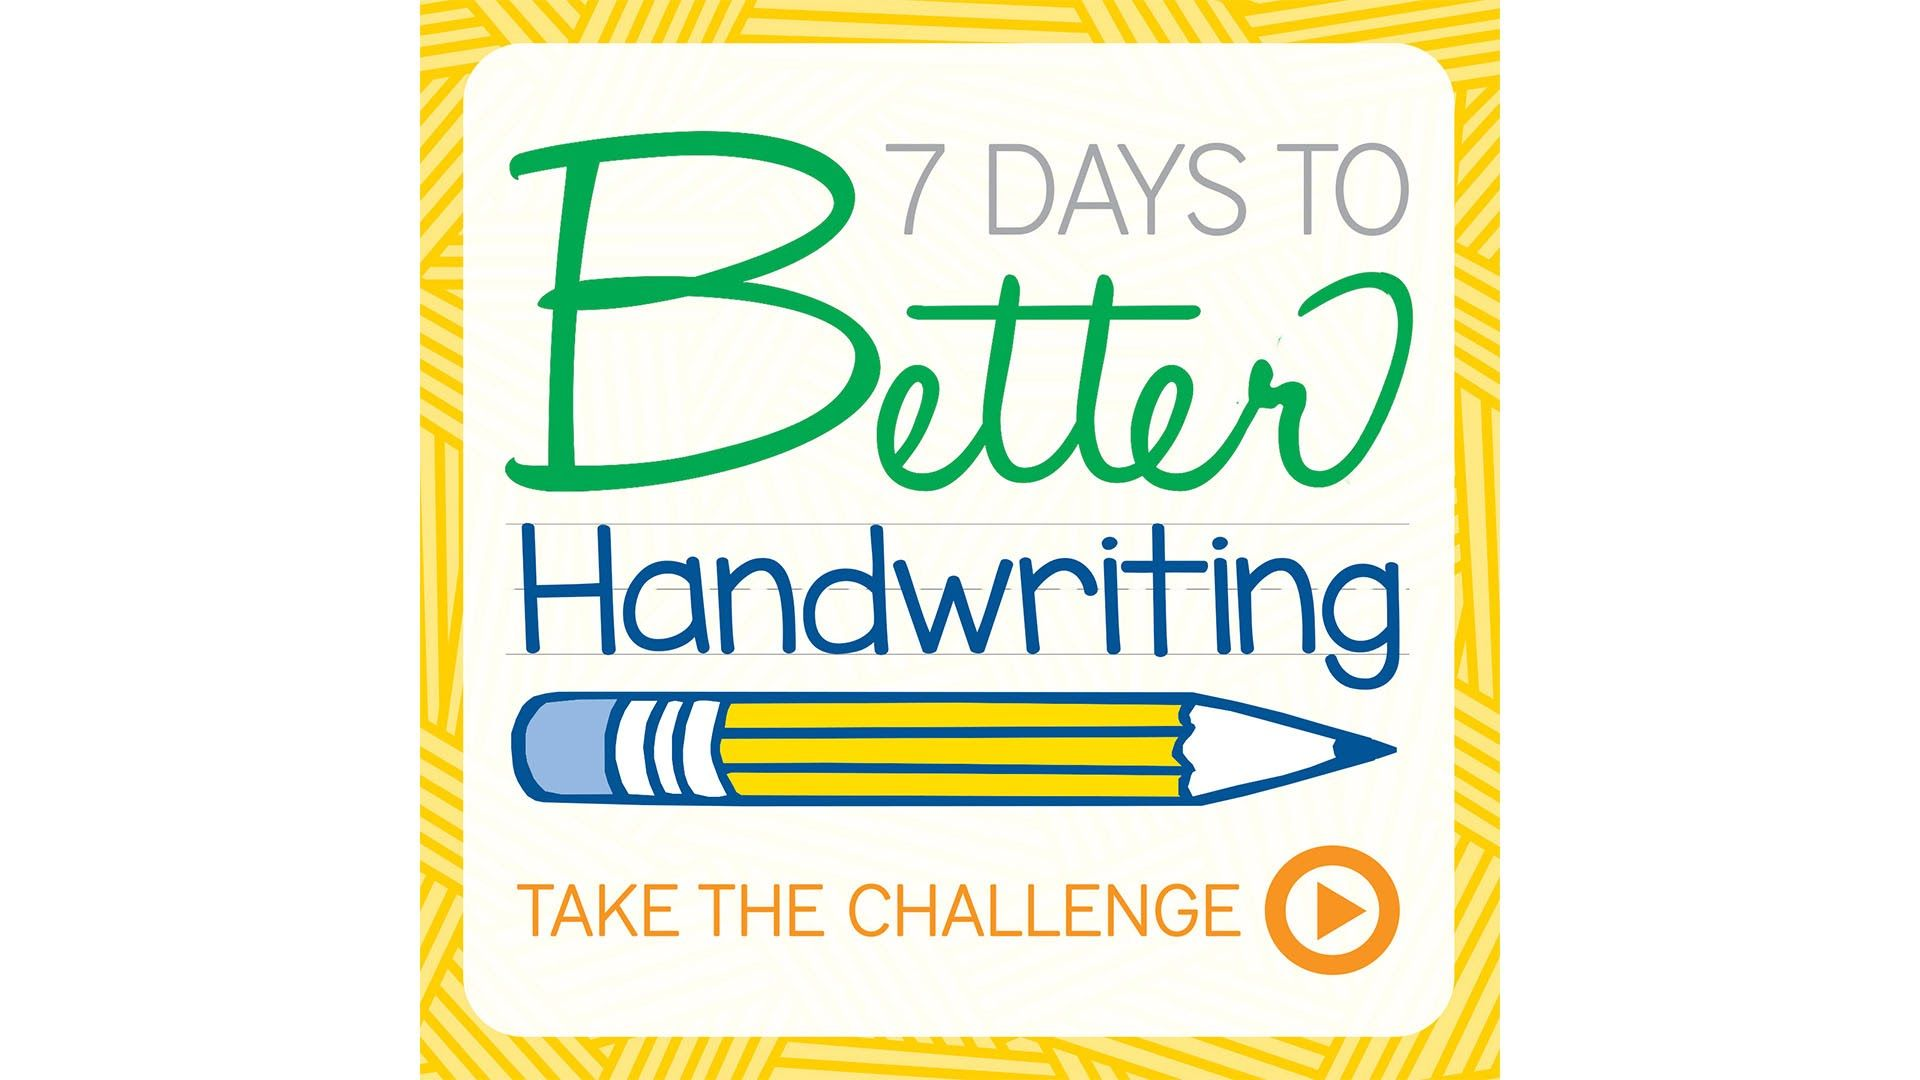 Back To School 7 Days To Better Handwriting